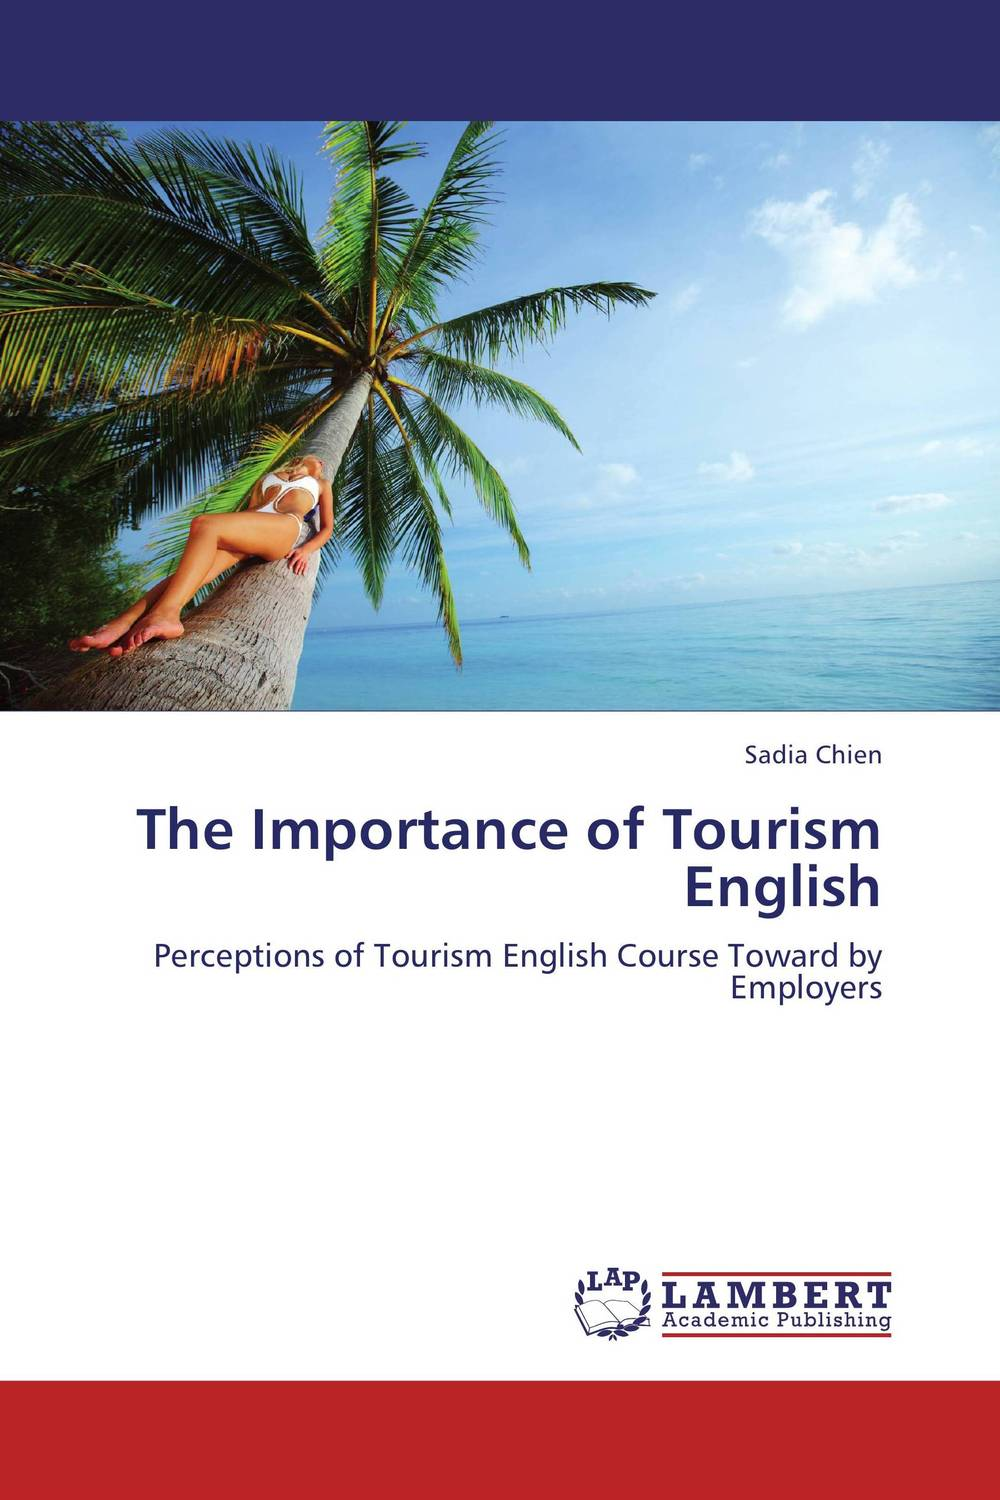 The Importance of Tourism English morris c flash on english for tourism second edition